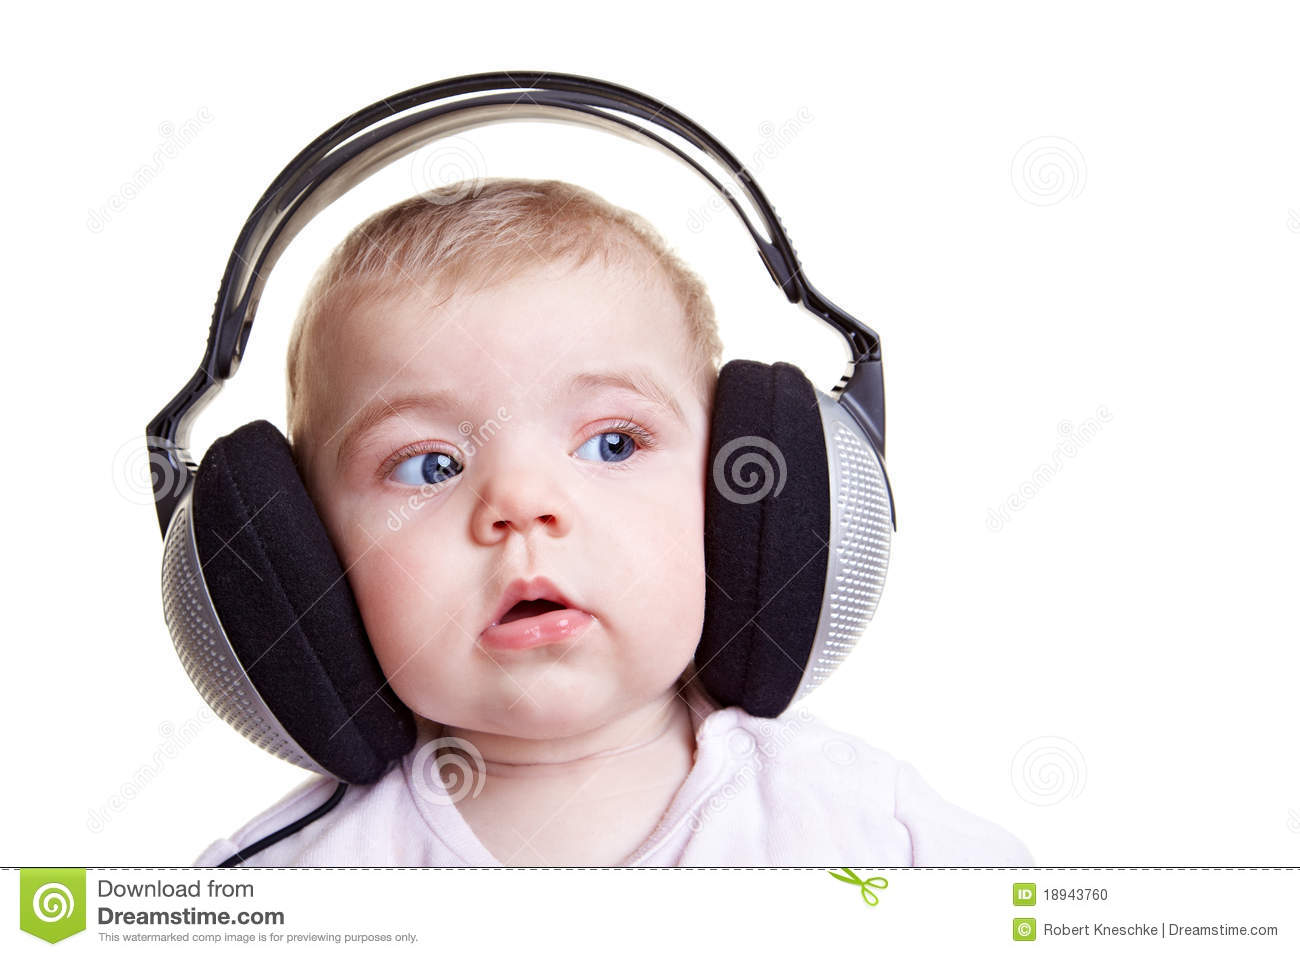 Baby Listening To Music Stock Photo  Image: 18943760